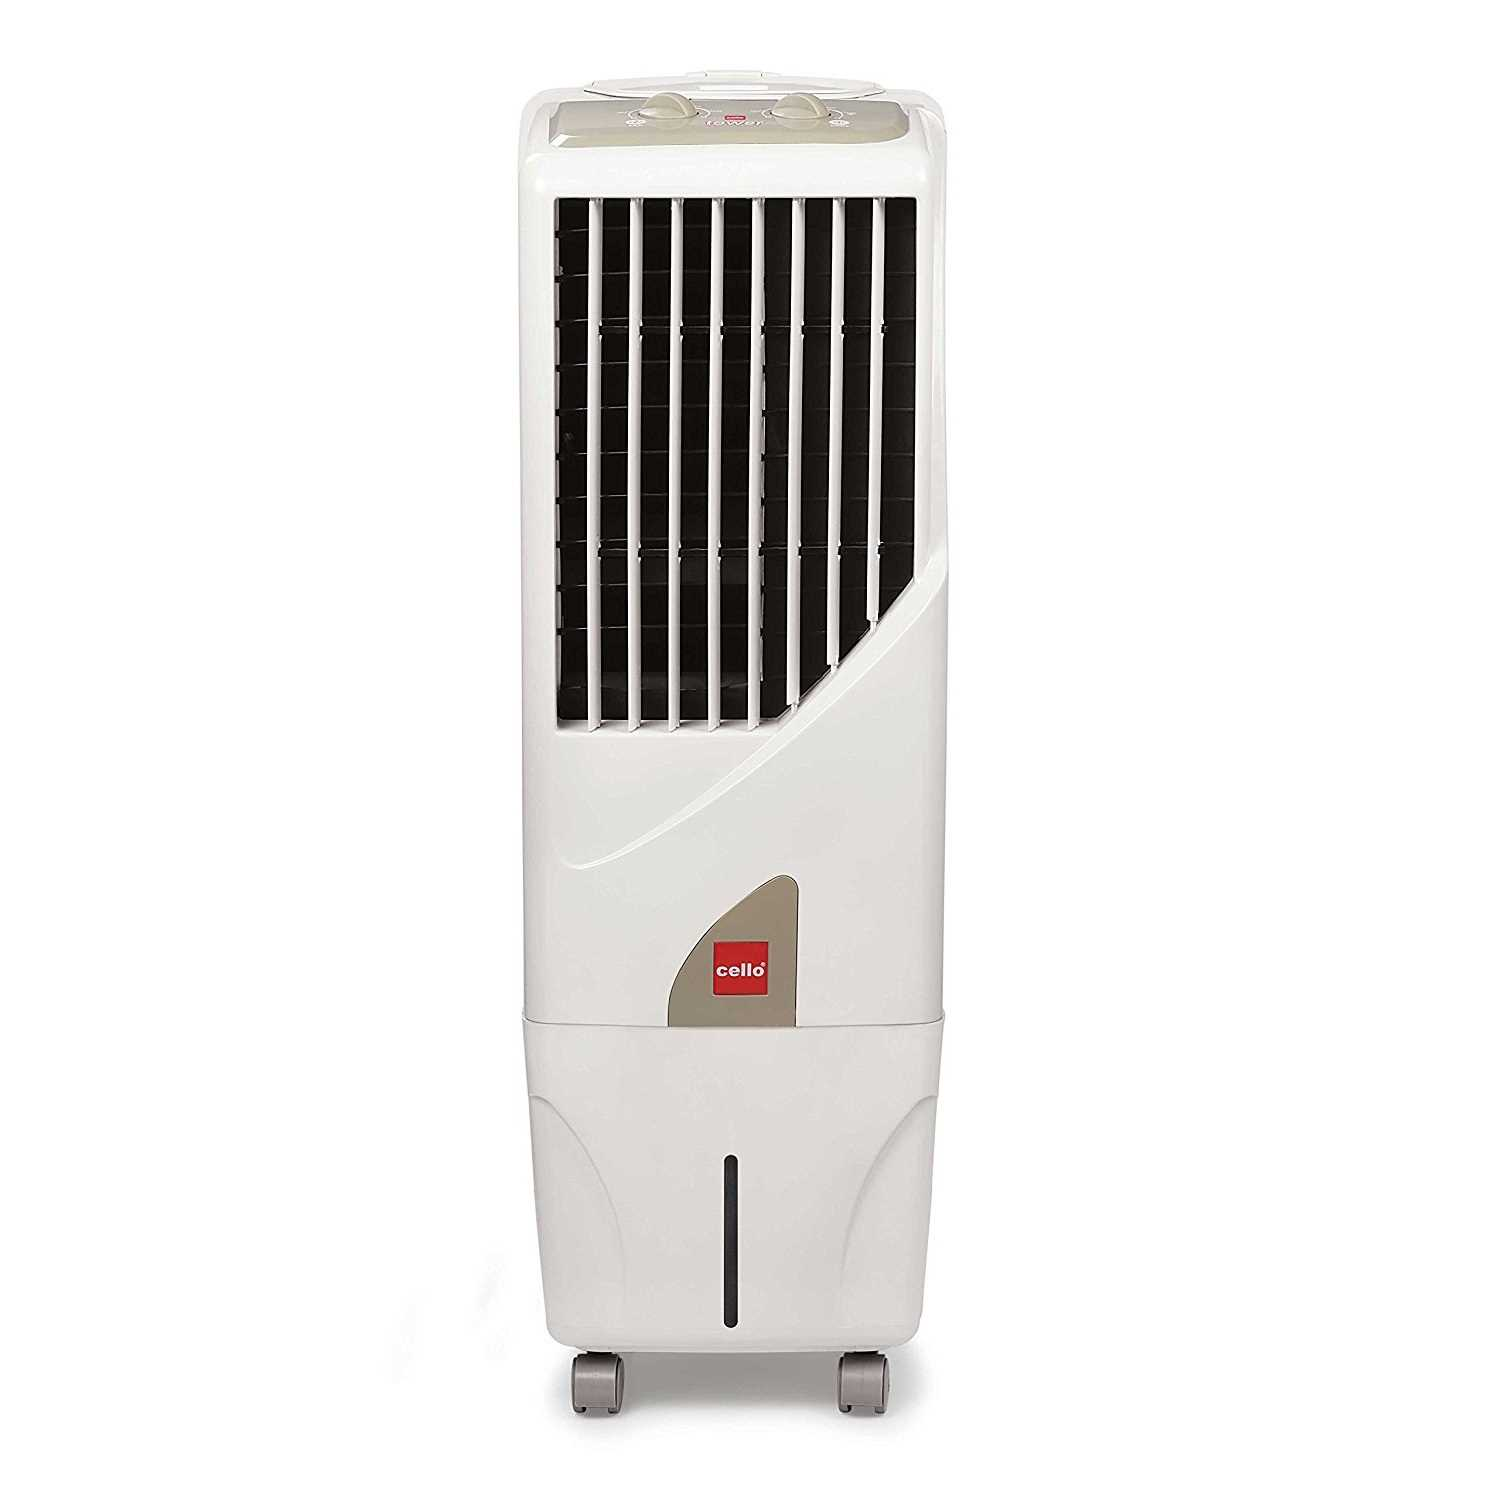 Cello Tower 15 Air Cooler